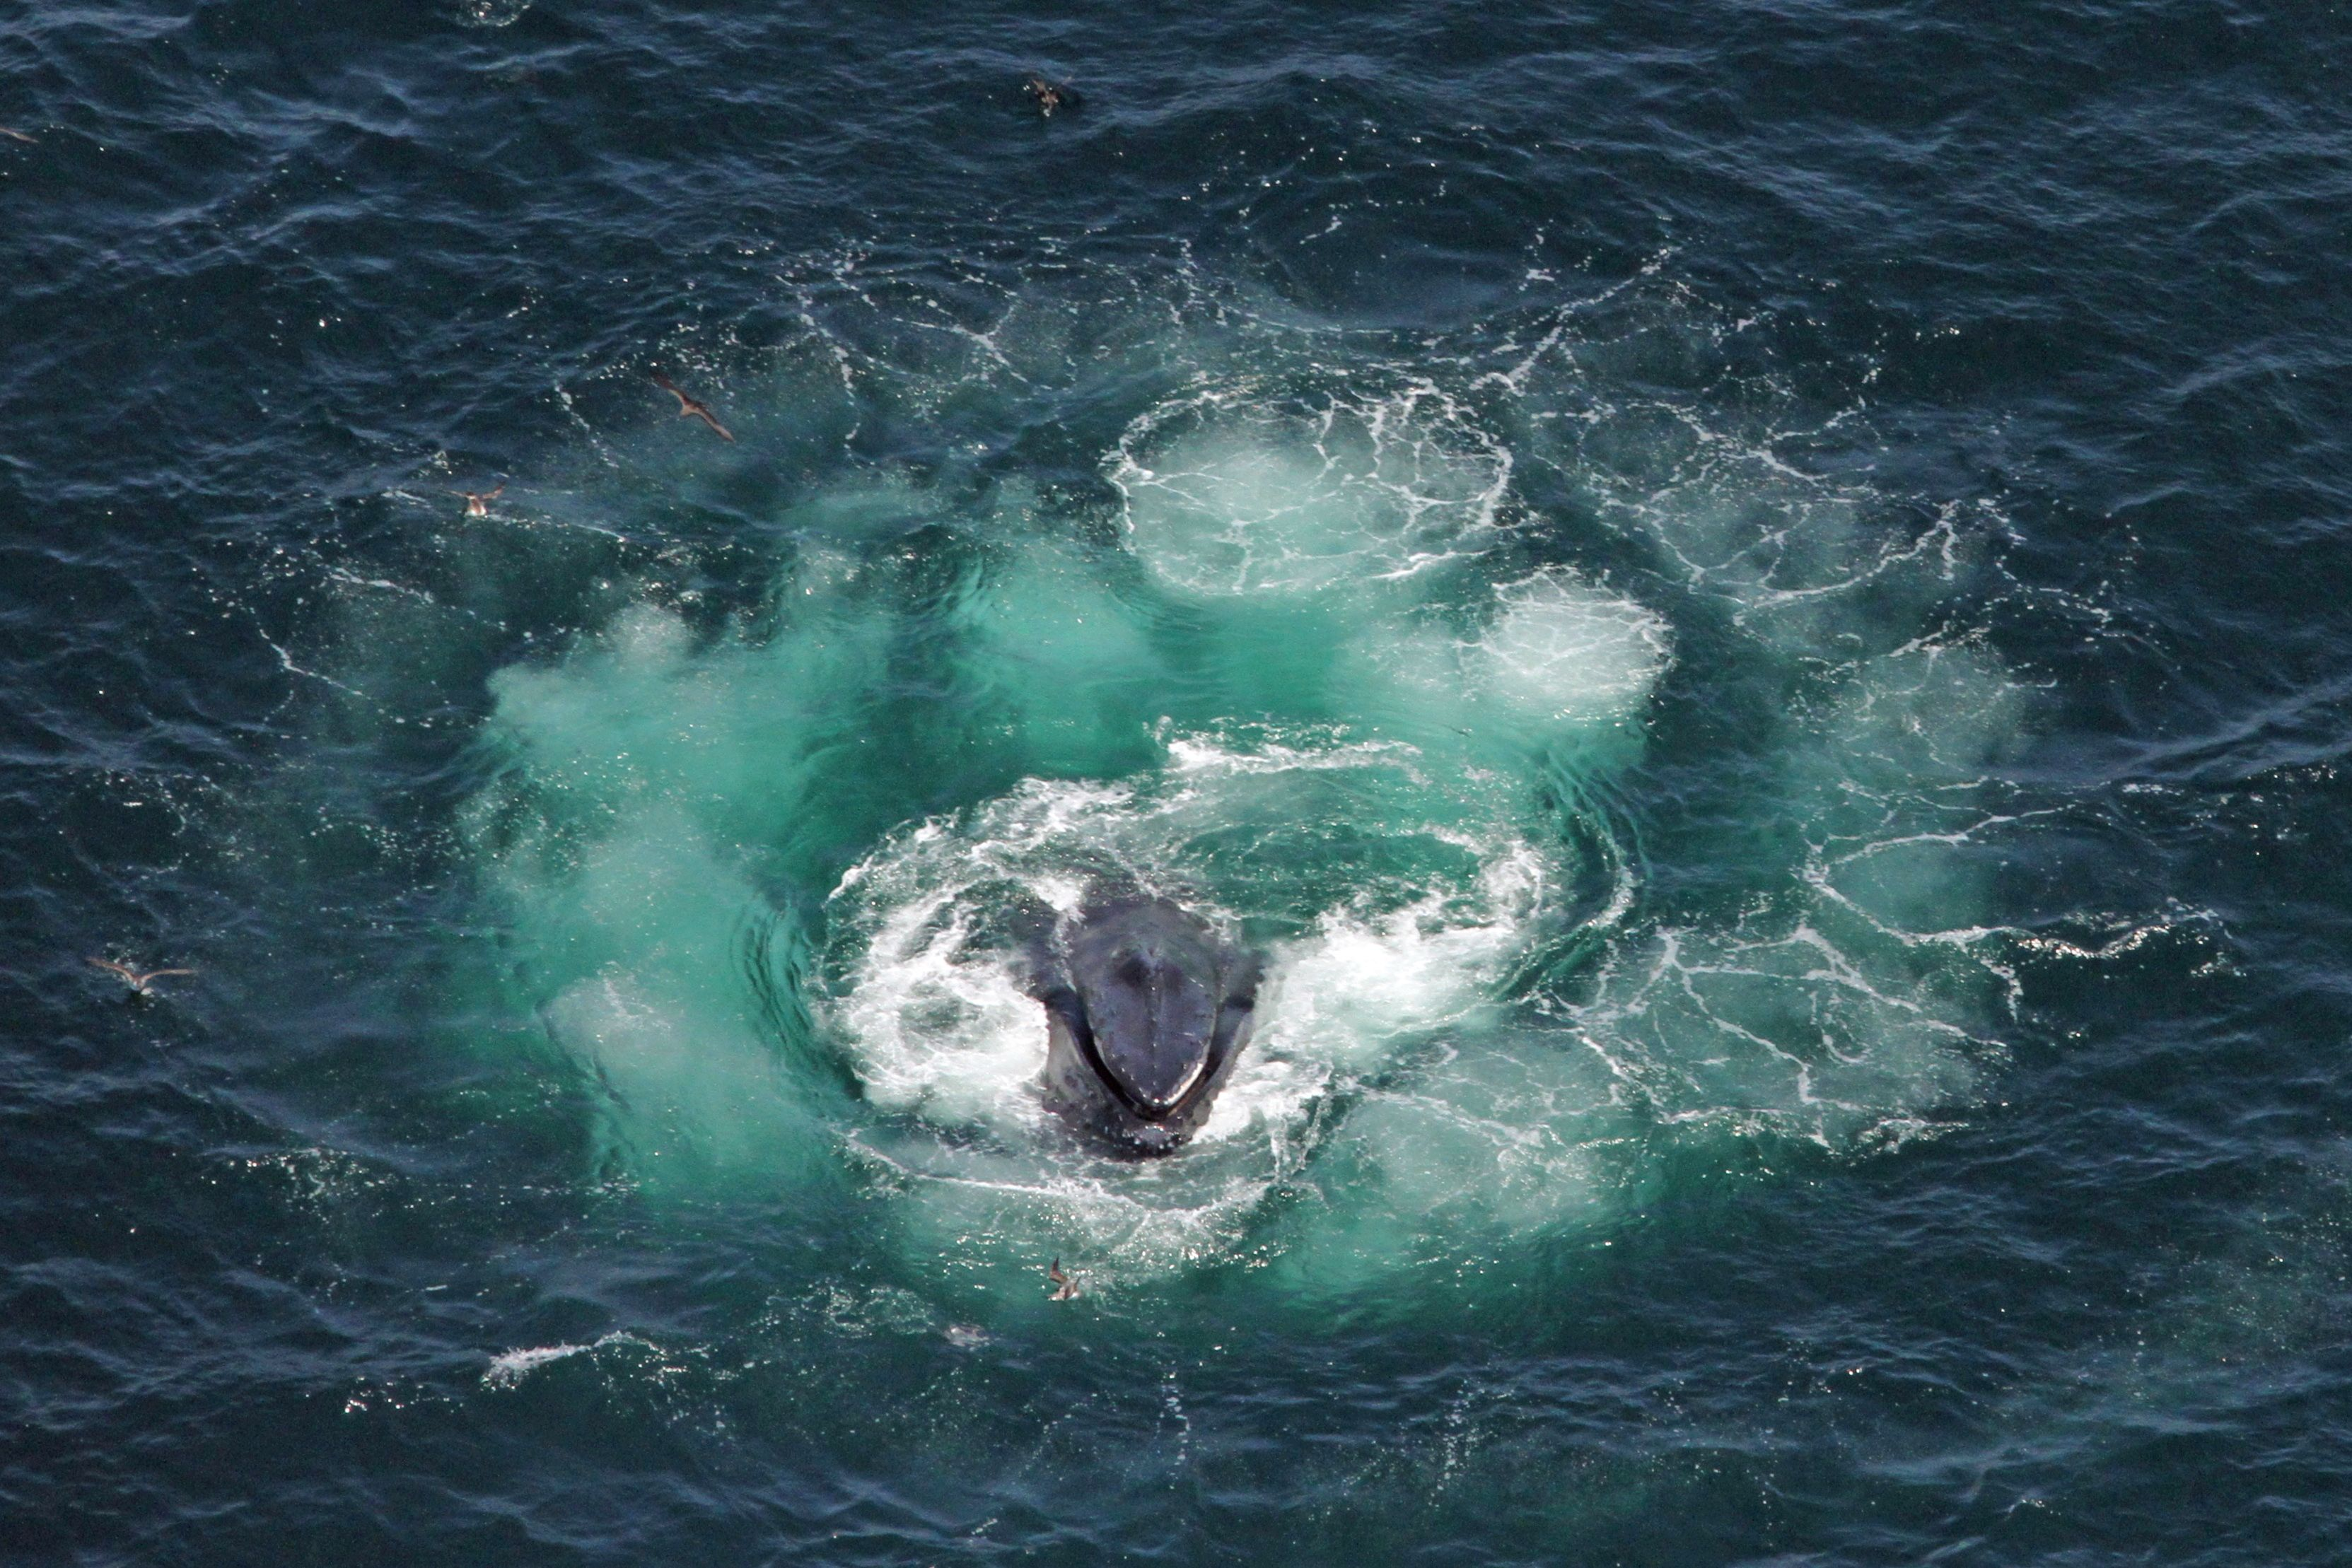 did you know humpback whales travel in pods or groups 2 15